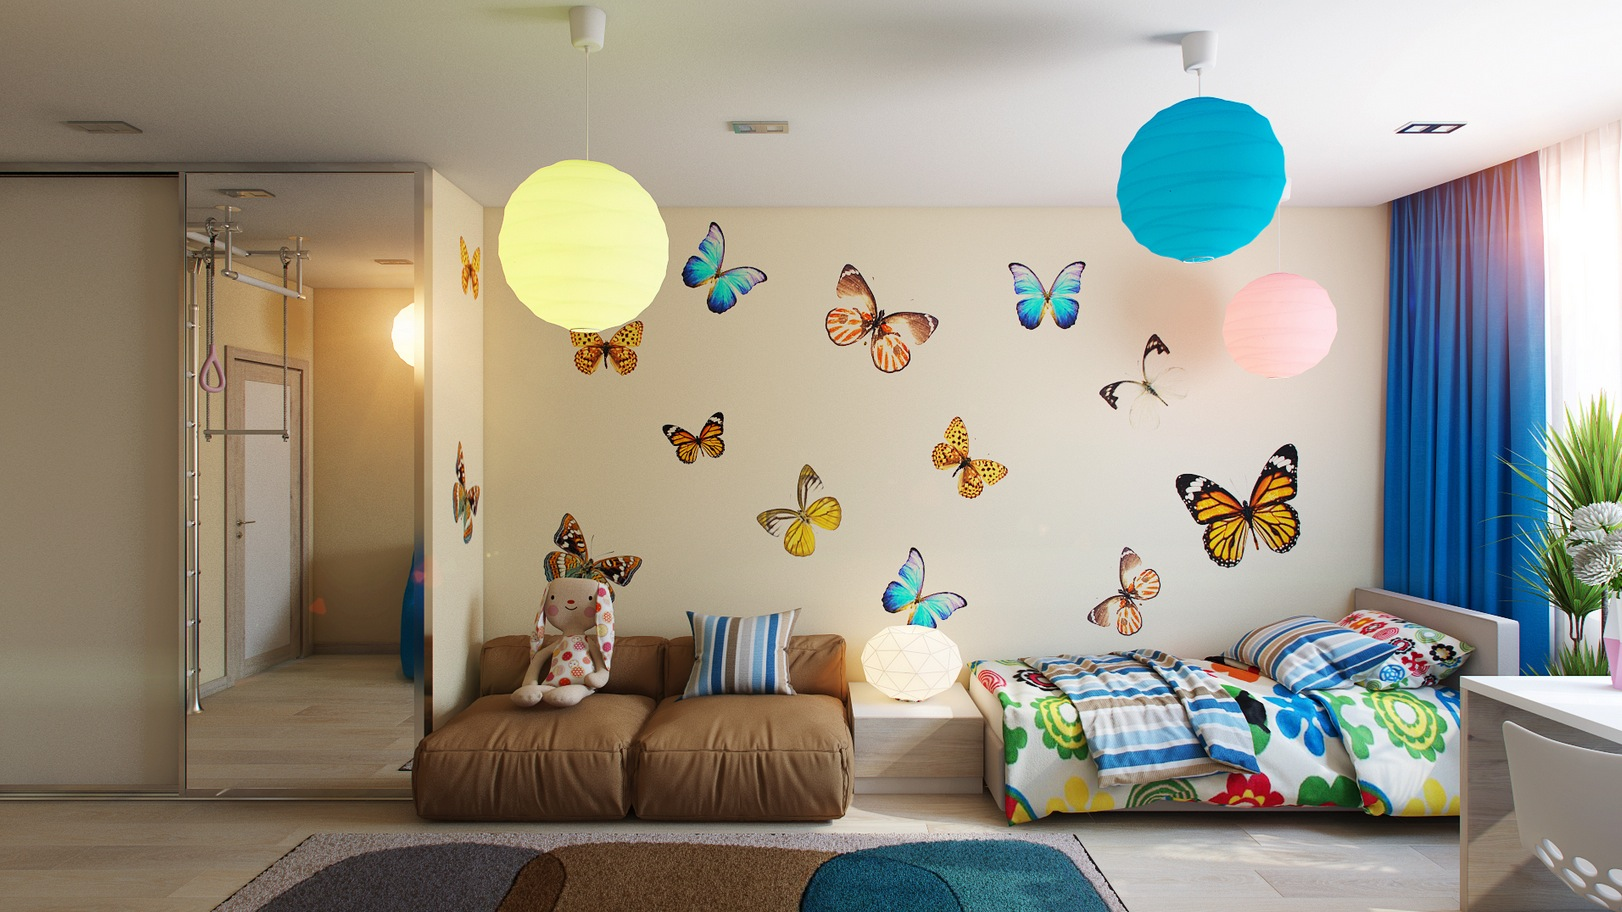 Butterfly Bedroom Decorating Ideas: Casting Color Over Kids Rooms